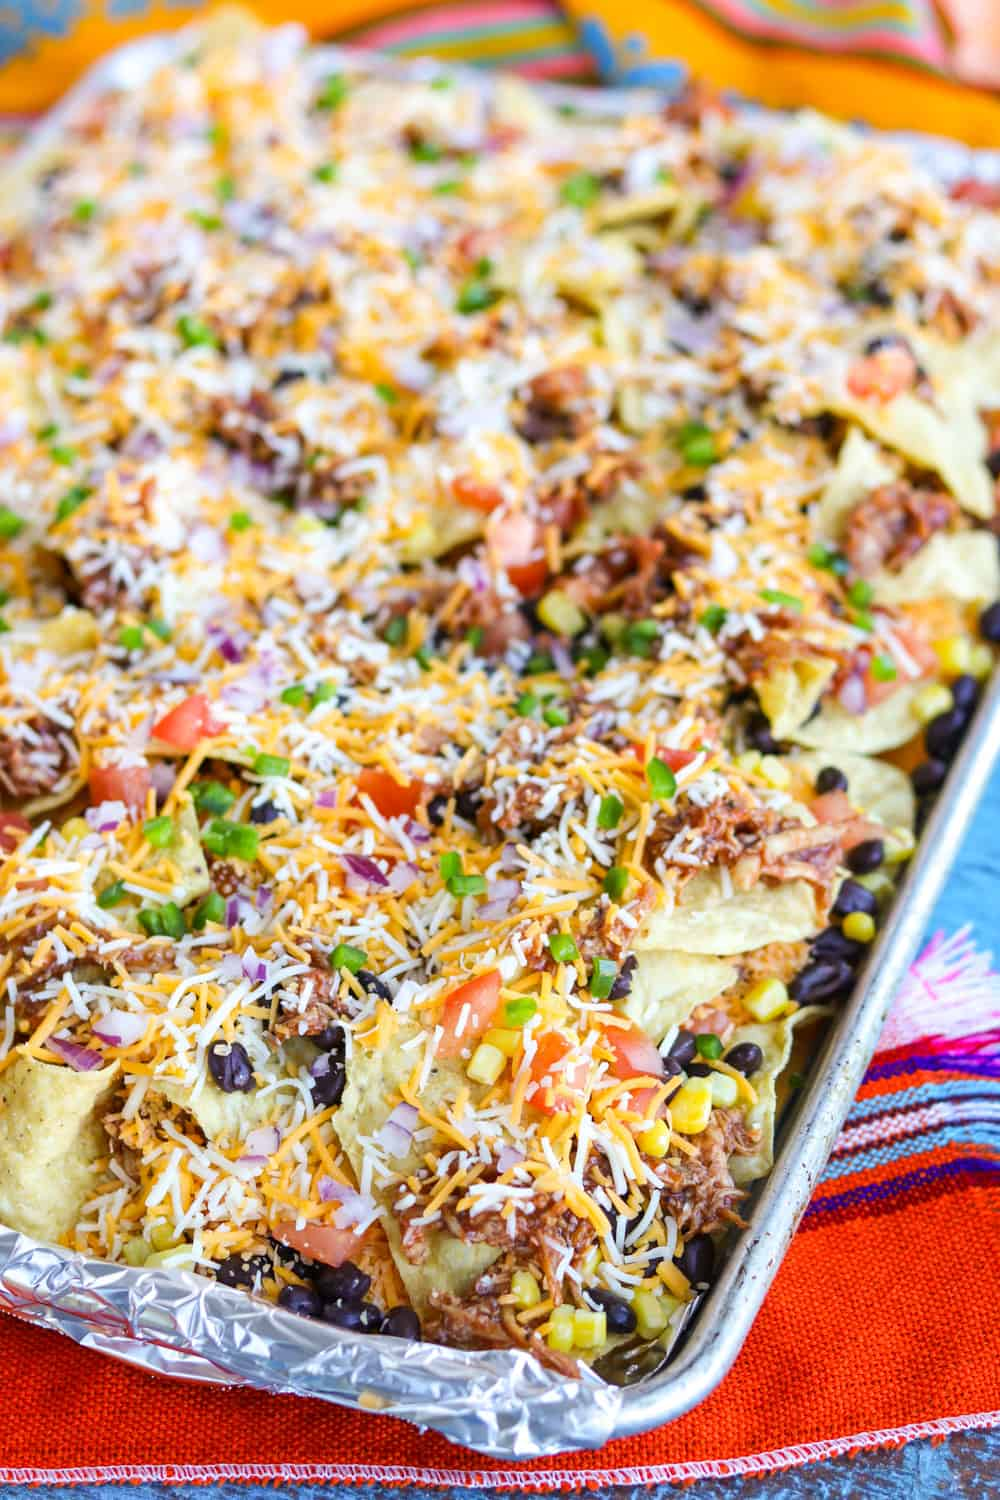 Oven ready nachos with all the fixins!